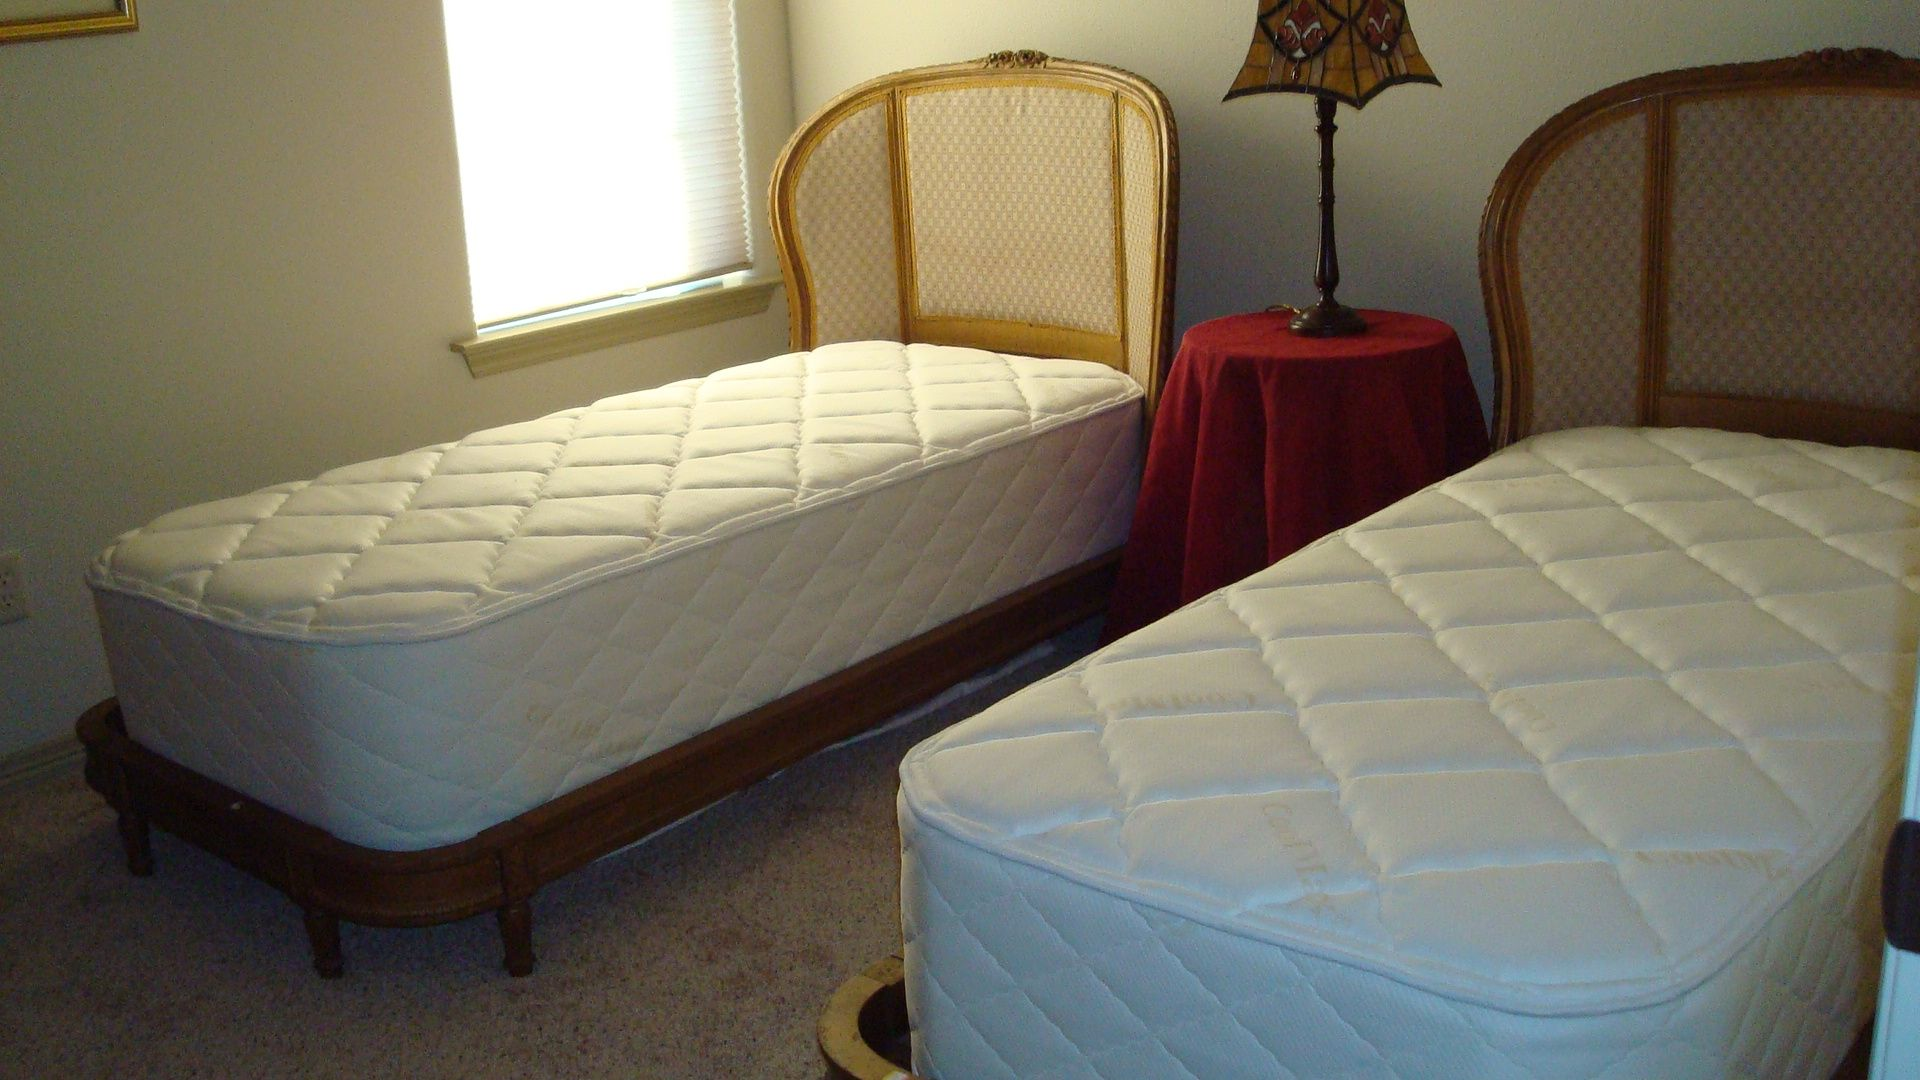 Mattress For Antique Beds